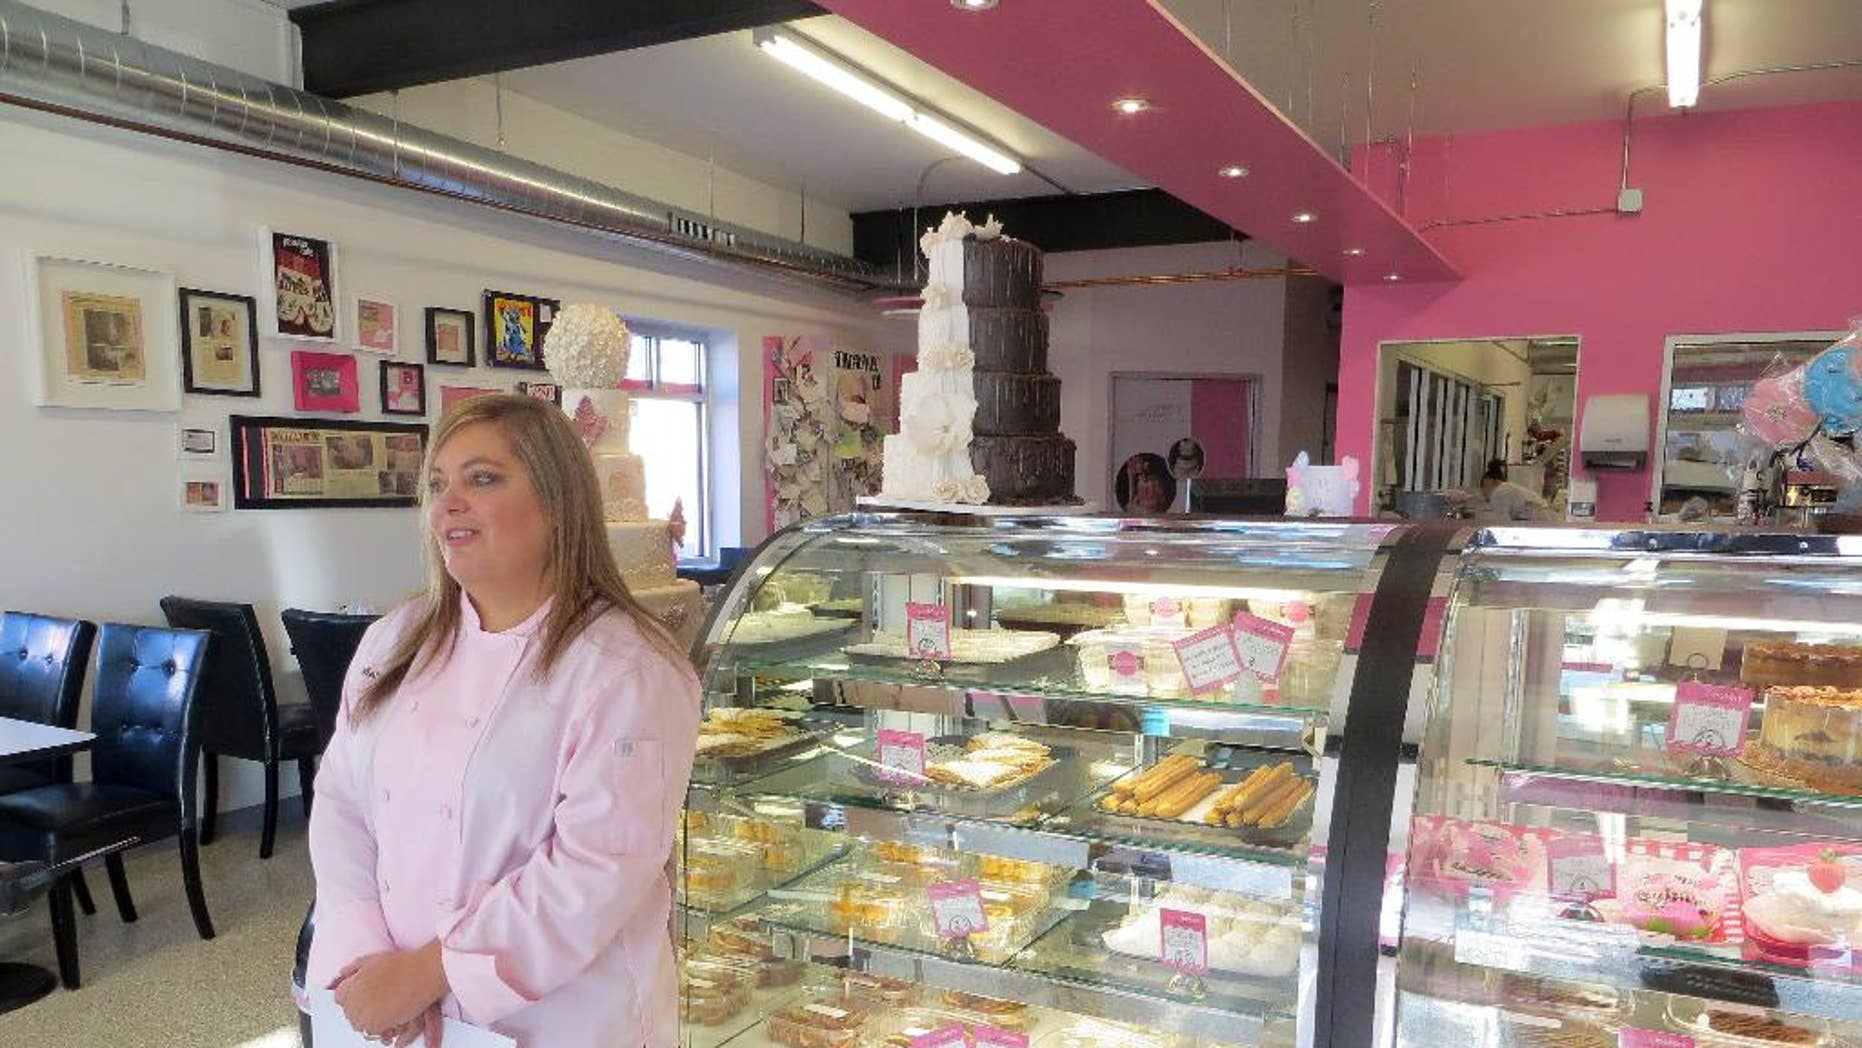 In this Jan. 20, 2015 photo, bakery owner Marjorie Silva stands for a photo inside her own Azucar Bakery, in Denver. Silva is facing a discrimination complaint with Colorado's Civil Rights Division because she refused to write hateful words about gays on a cake for a customer. (AP Photo/Ivan Moreno)